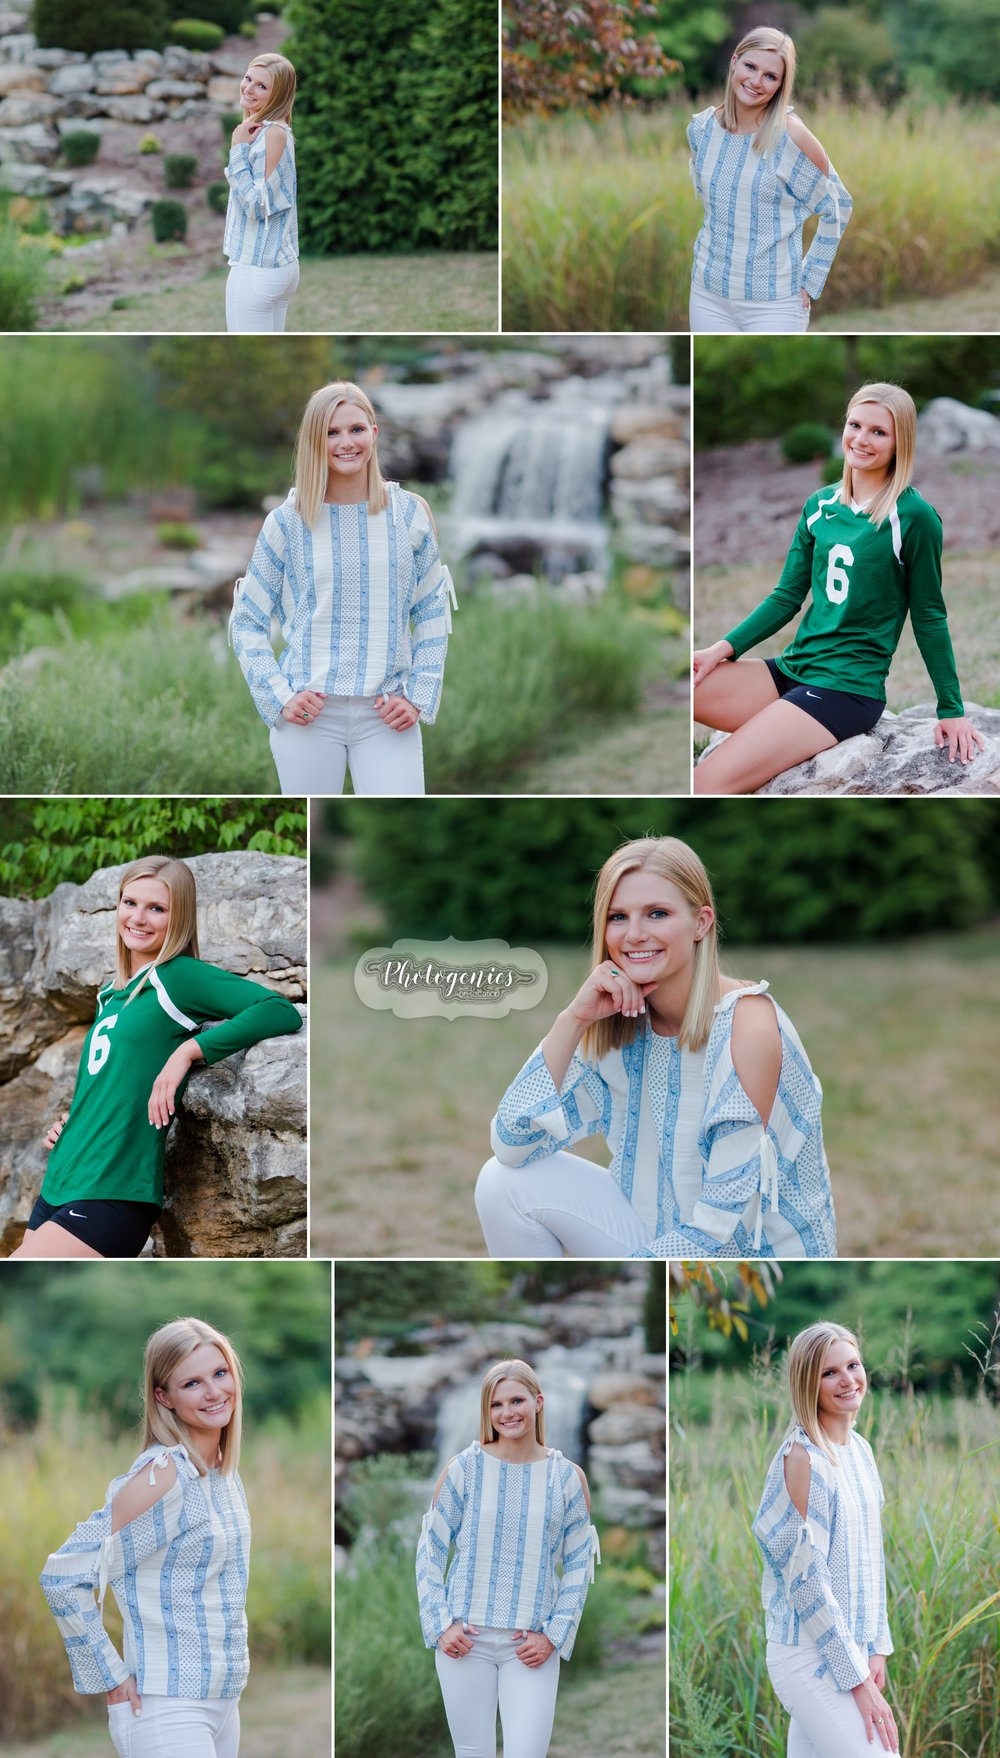 senior_photography_st_louis_mo_wildwood_st_joseph_academy_poses_modern_senior_girl_washington_mo 3